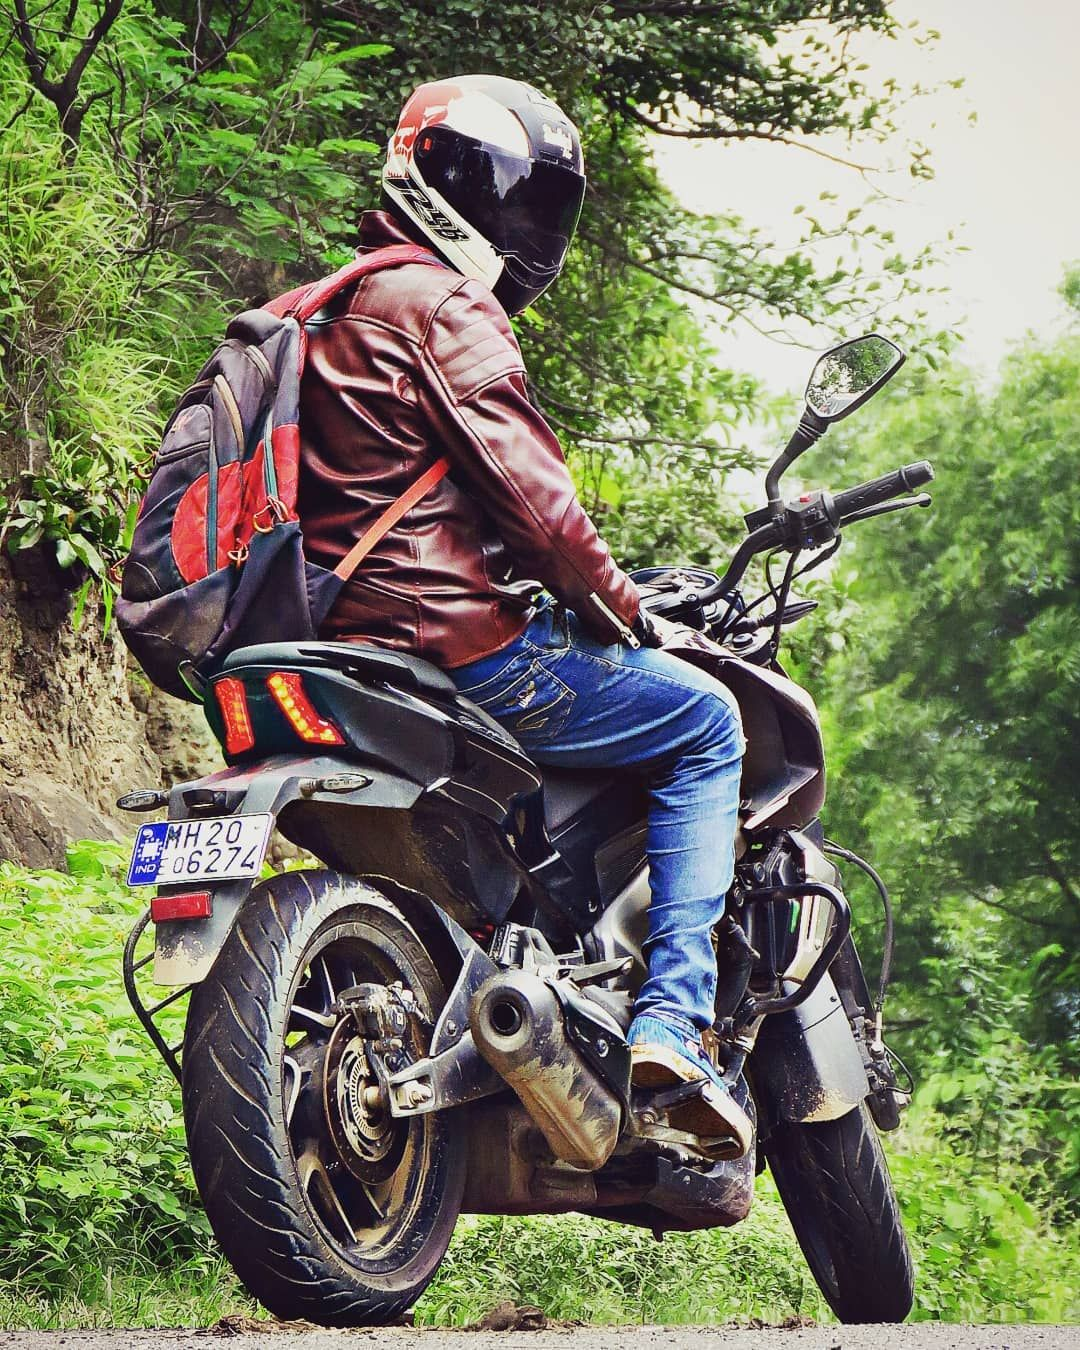 Pin by Yashwanth on Motorcycles Motorcycle, Riding, Ktm